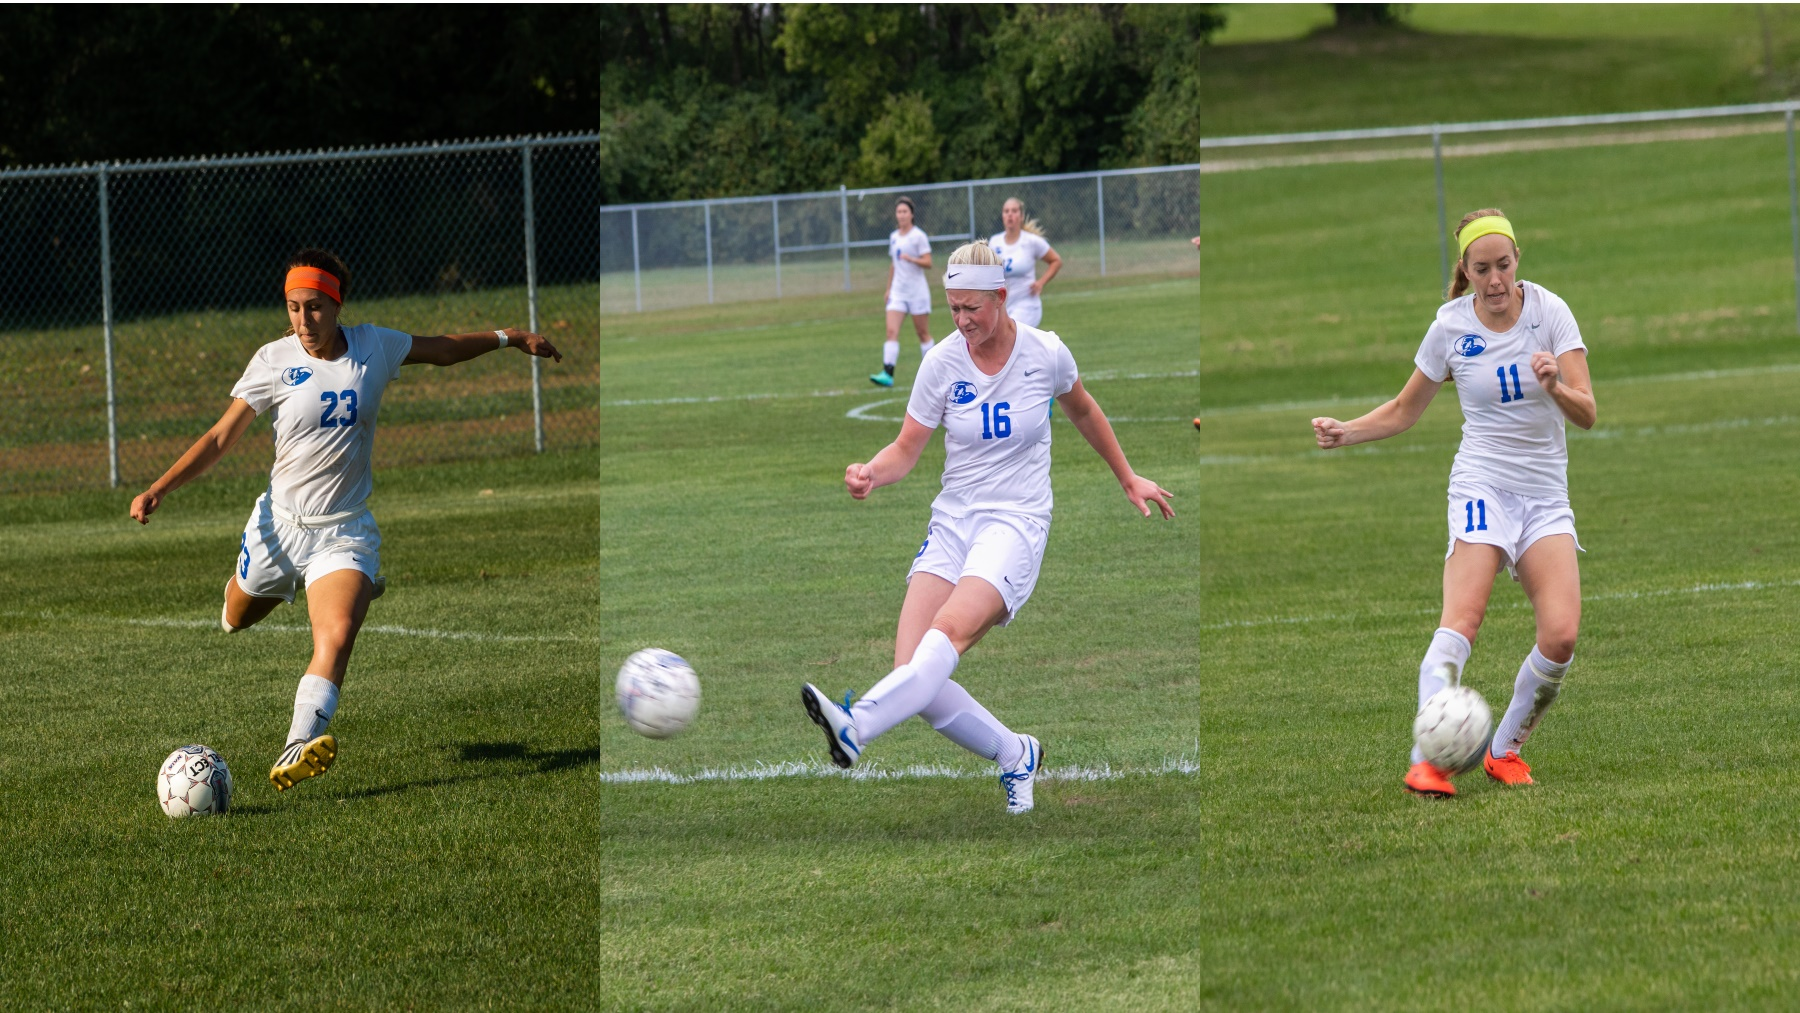 Lezotte, Wilhite, and Lawwell Tabbed All-RSC First Team Members image